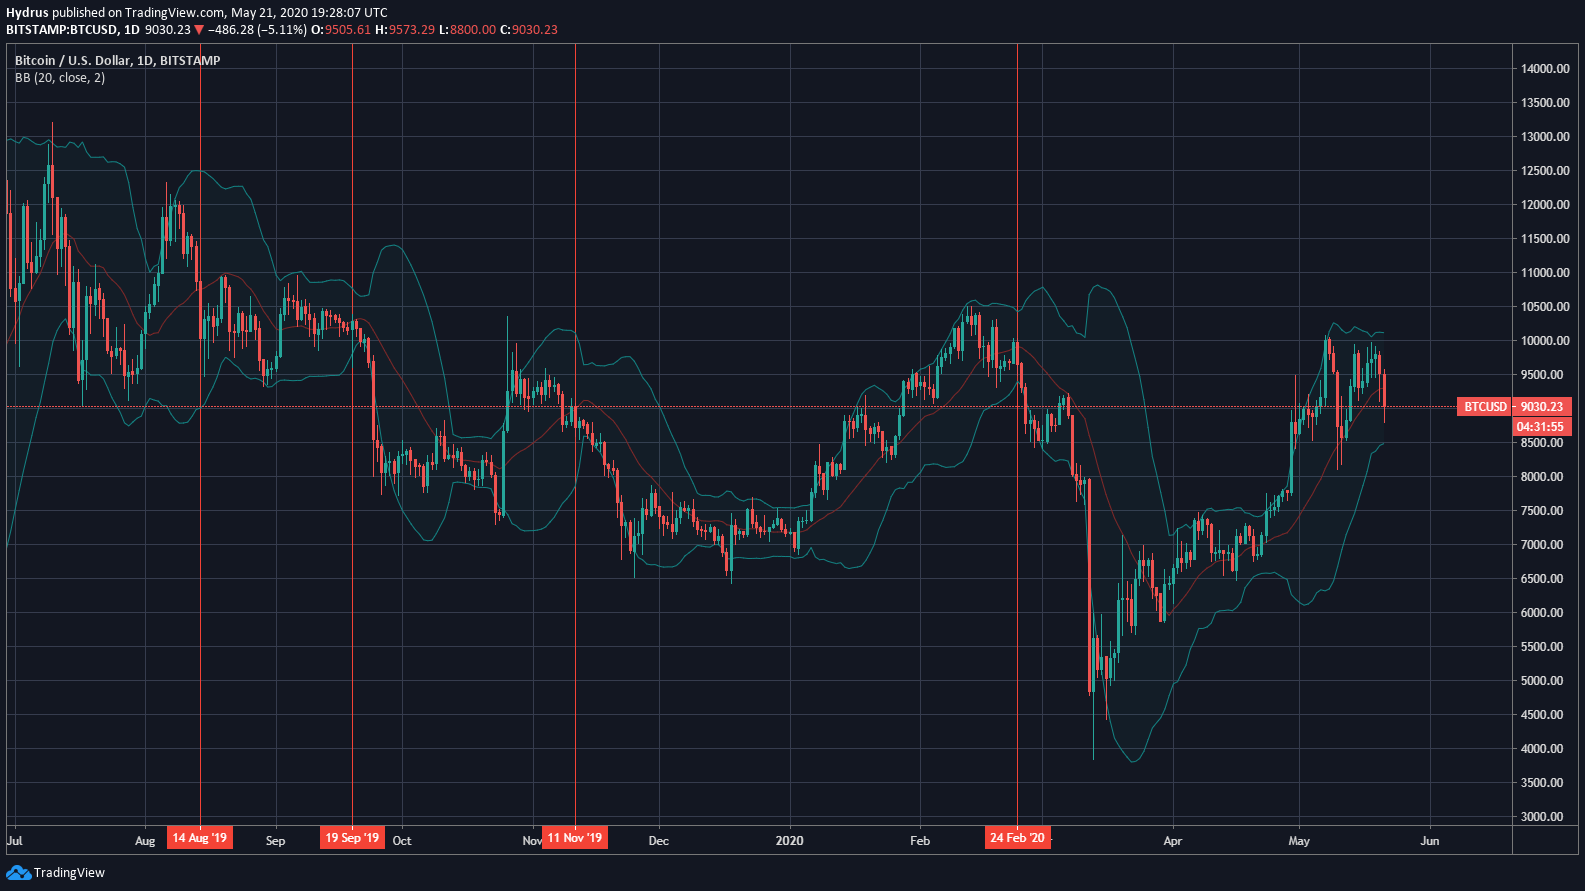 BTC price chart from TradingView.com. The red vertical lines mark occasions when the cryptocurrency fell below the middle Bollinger Band, the 20-day moving average.